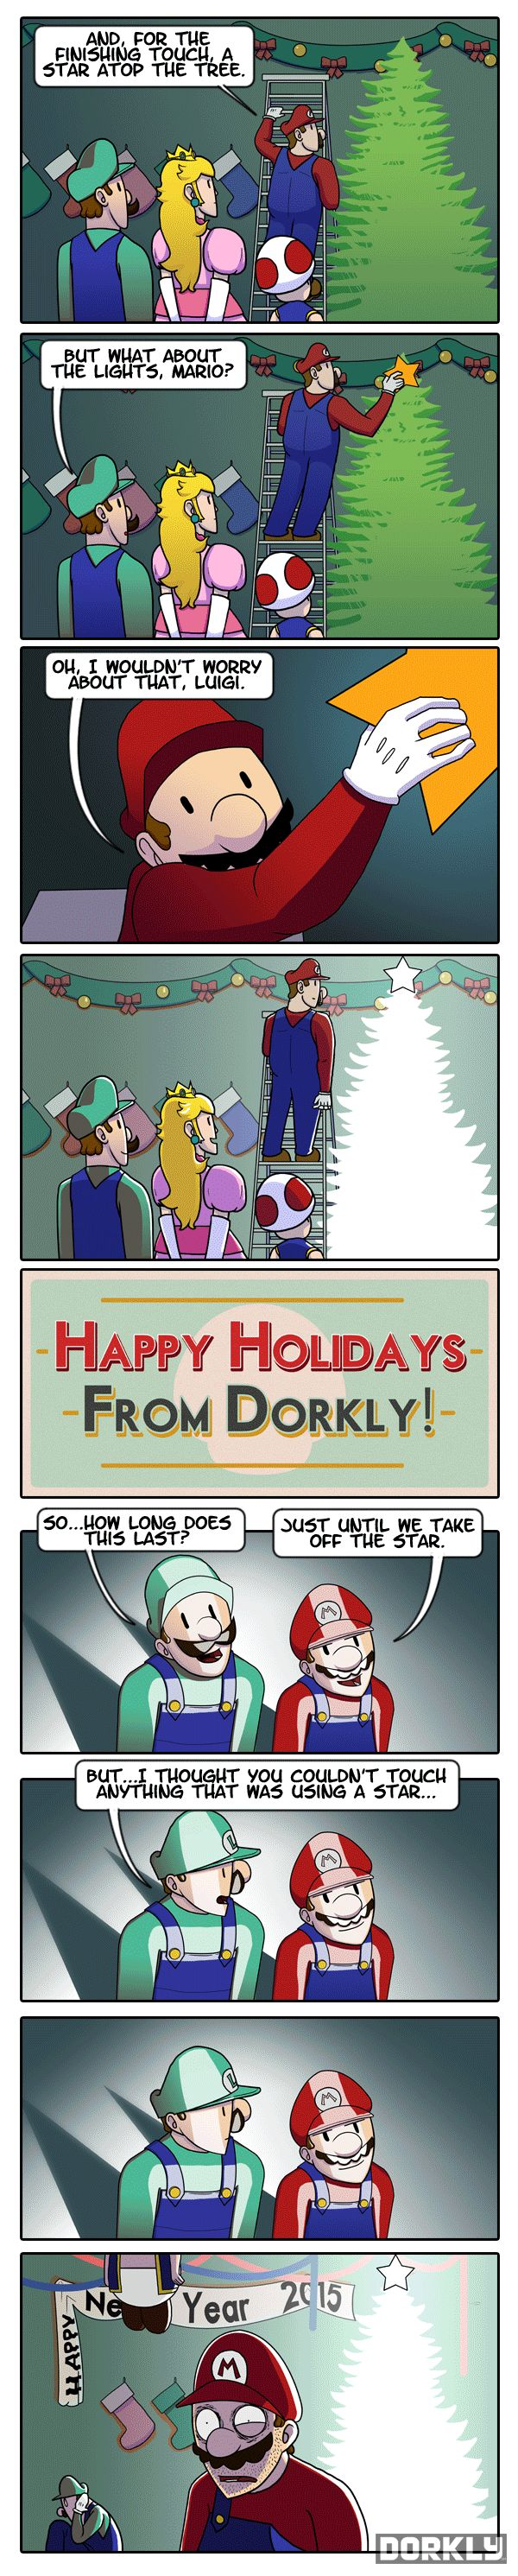 A Very Mario Christmas - Dorkly Comic